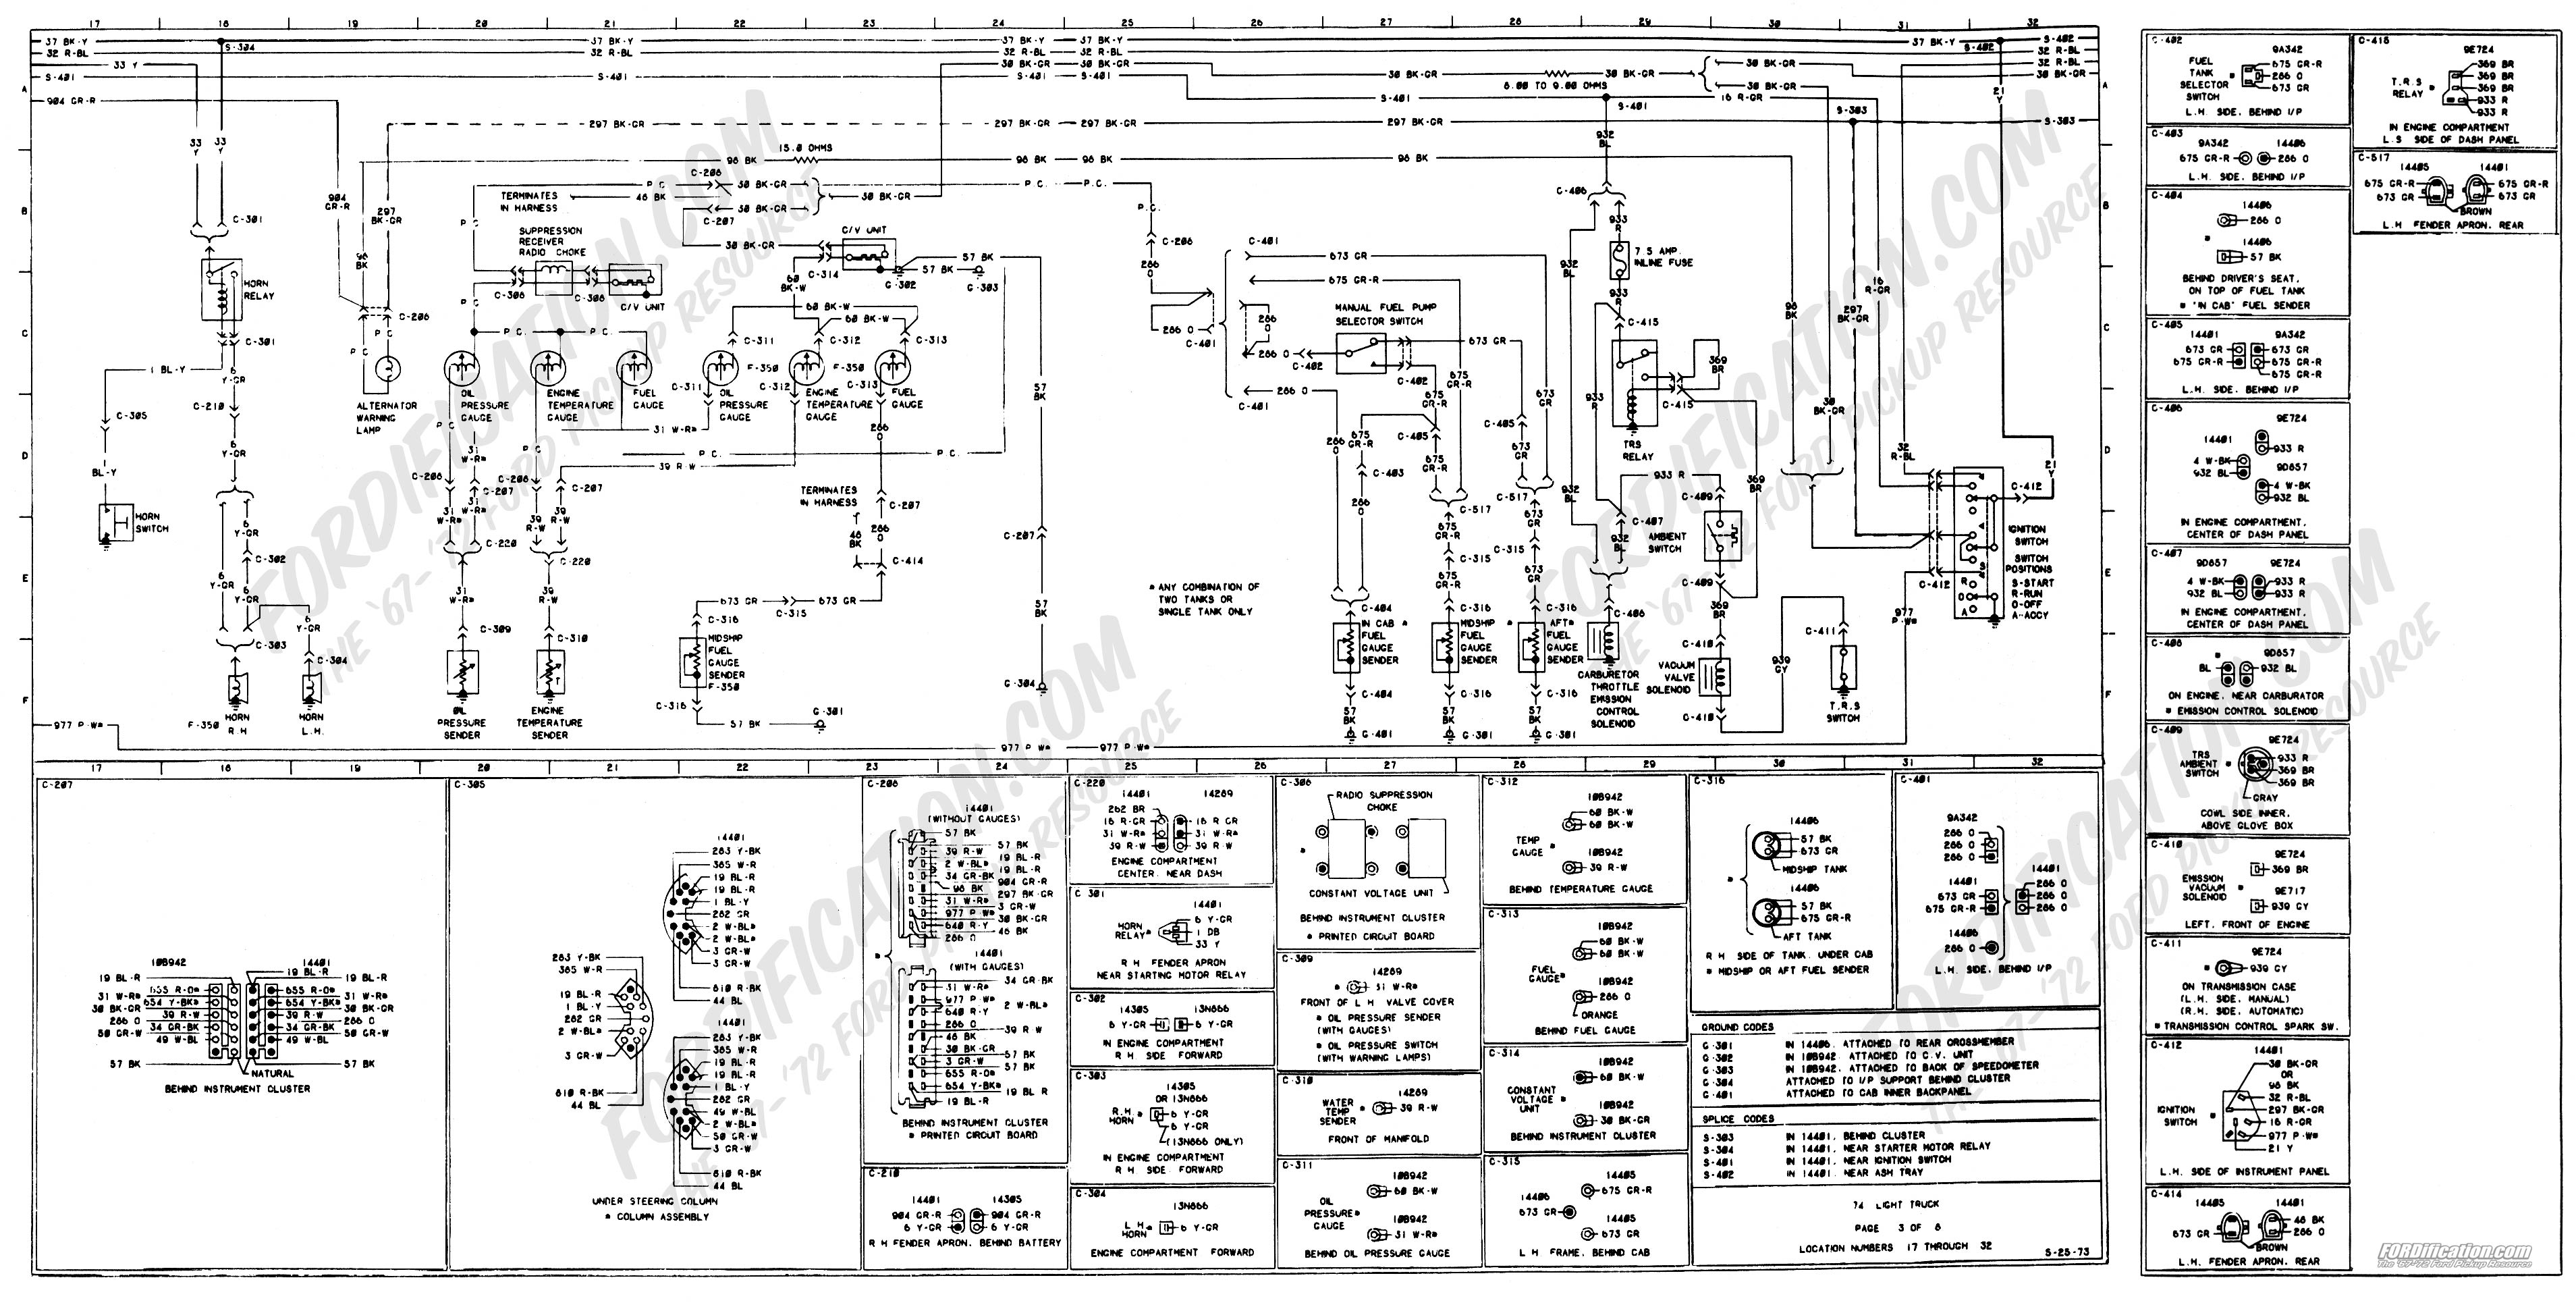 wiring_74master_3of8 1979 f350 wiring diagram wiring diagram schematic name